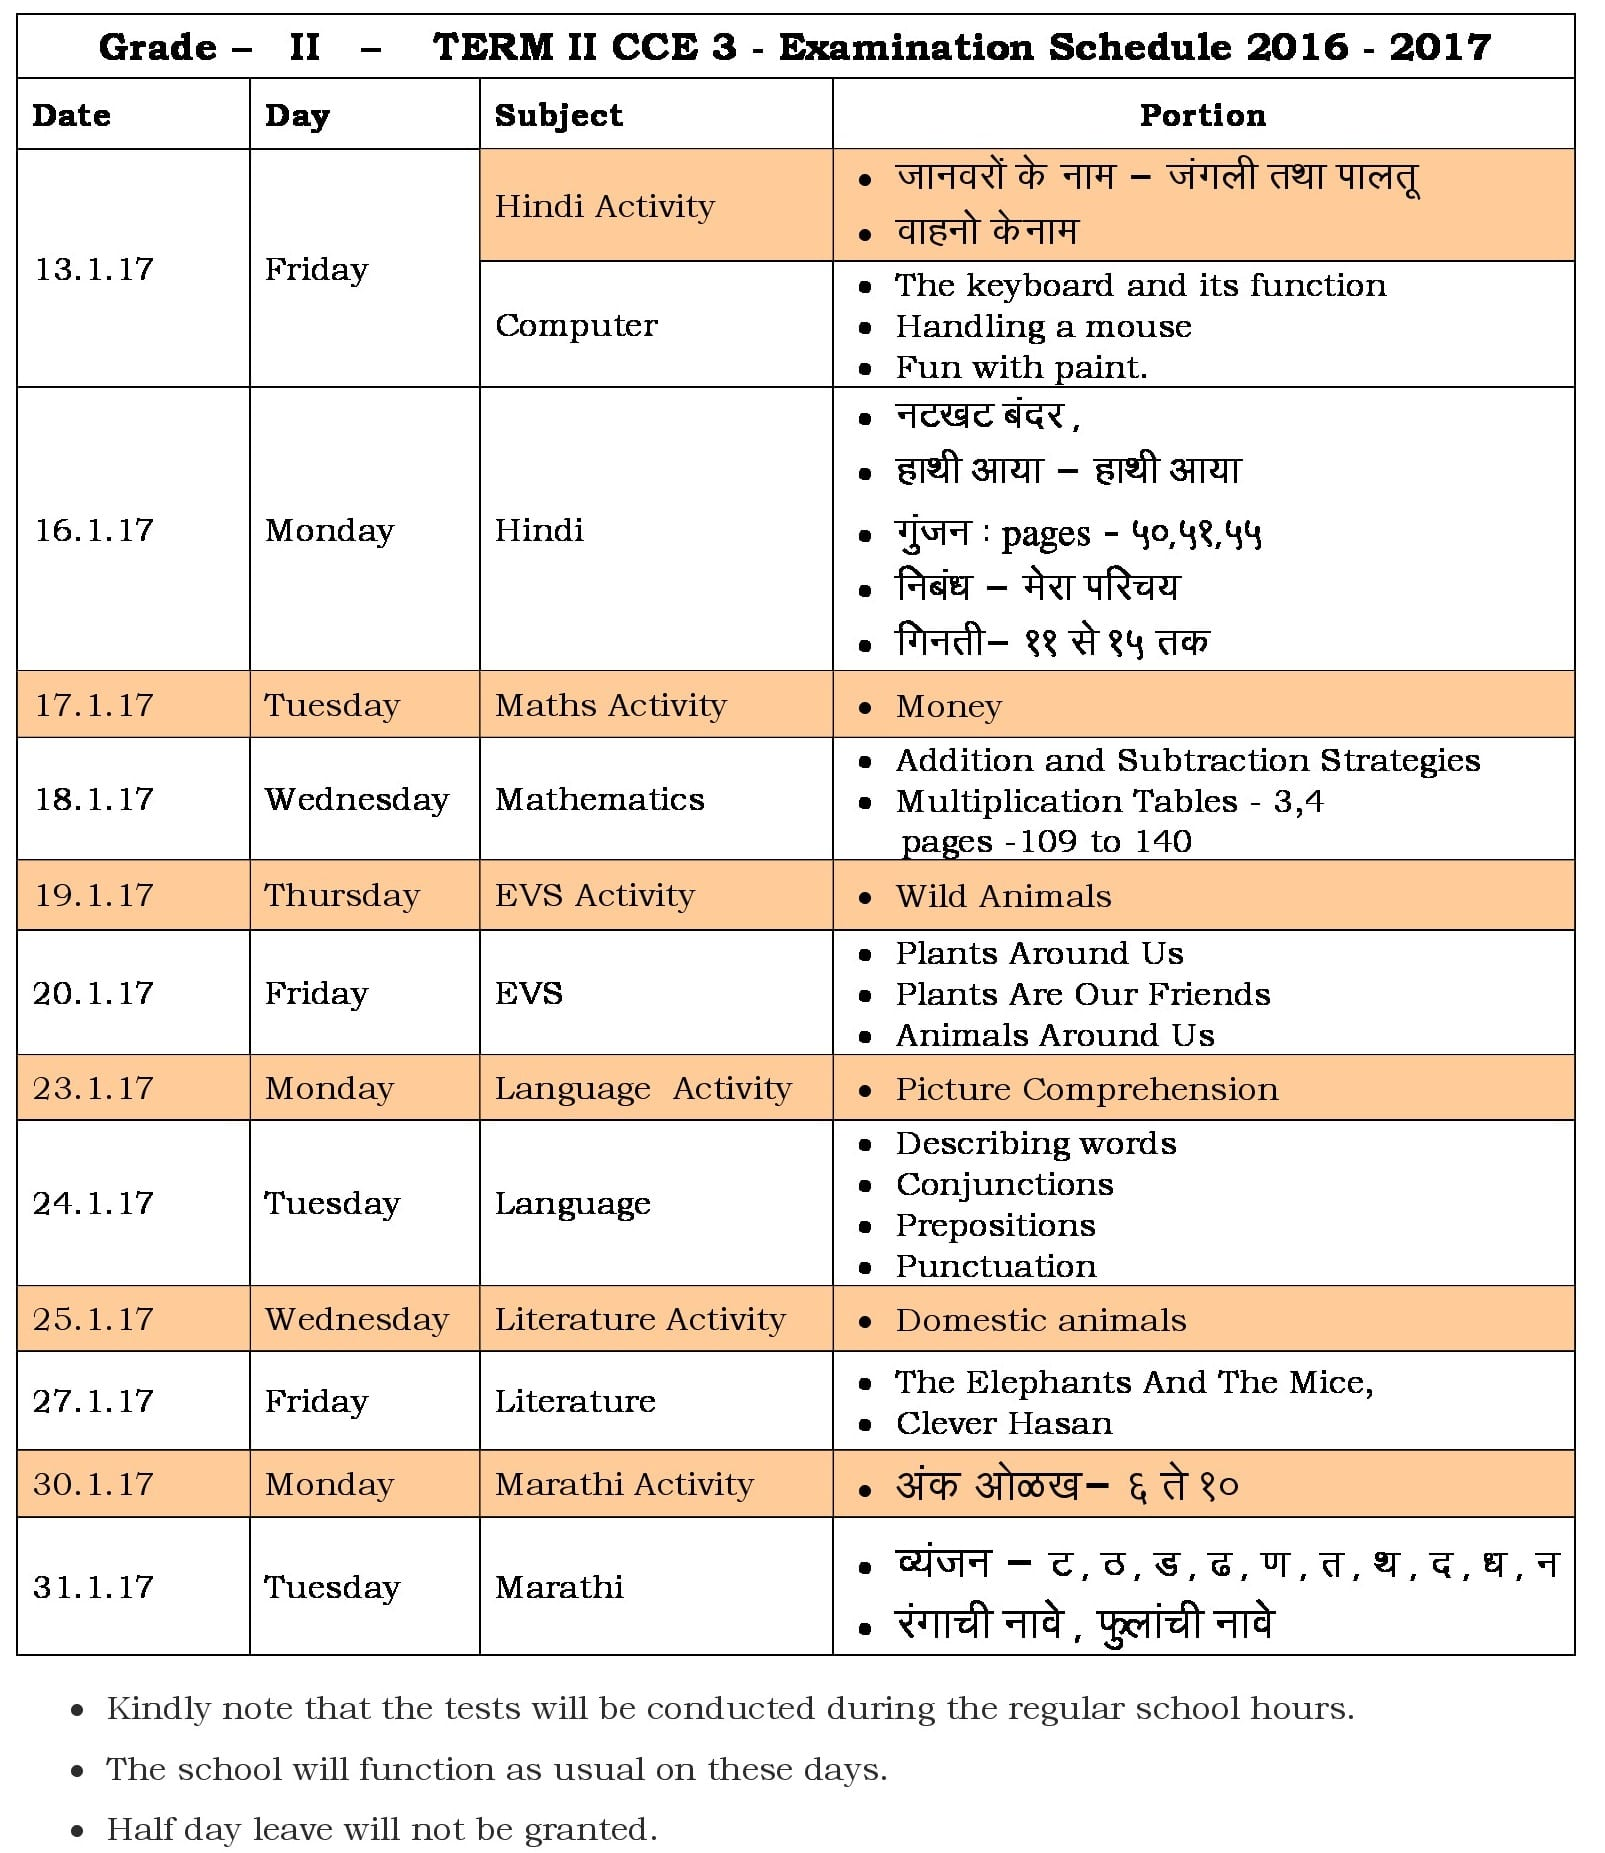 Term II CCE 3 Schedule